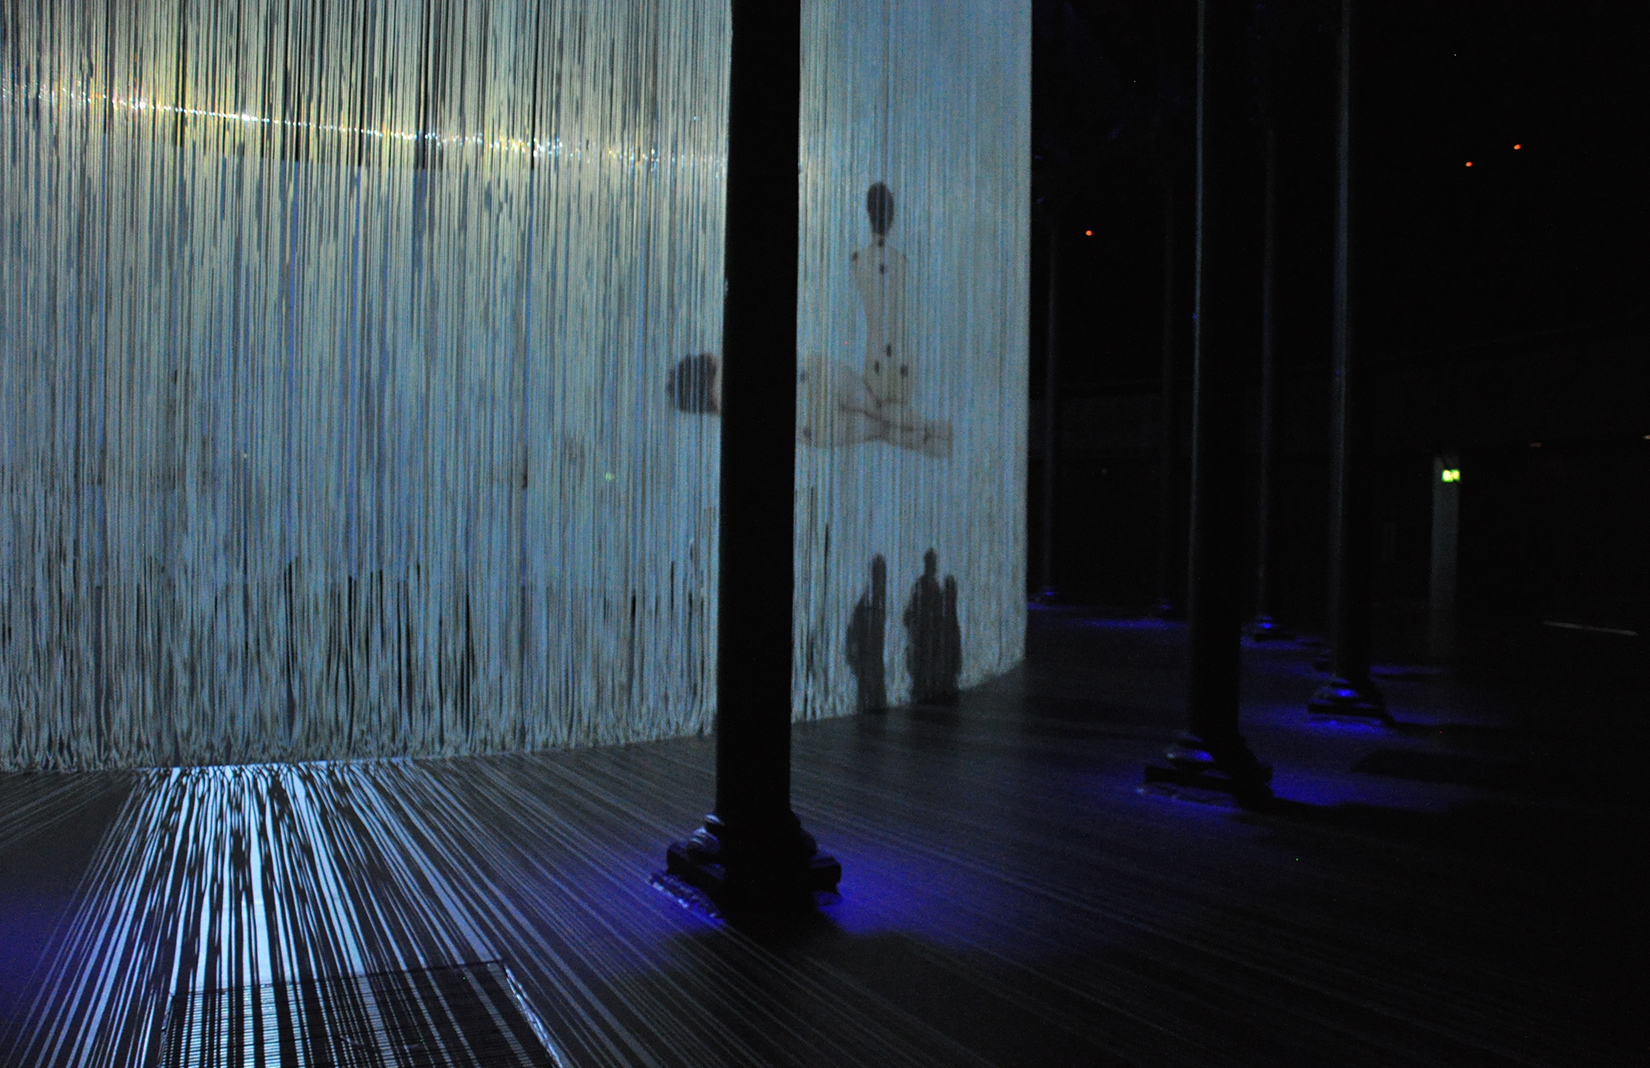 Ron Arads 360 degree installation Curtain Call opens at